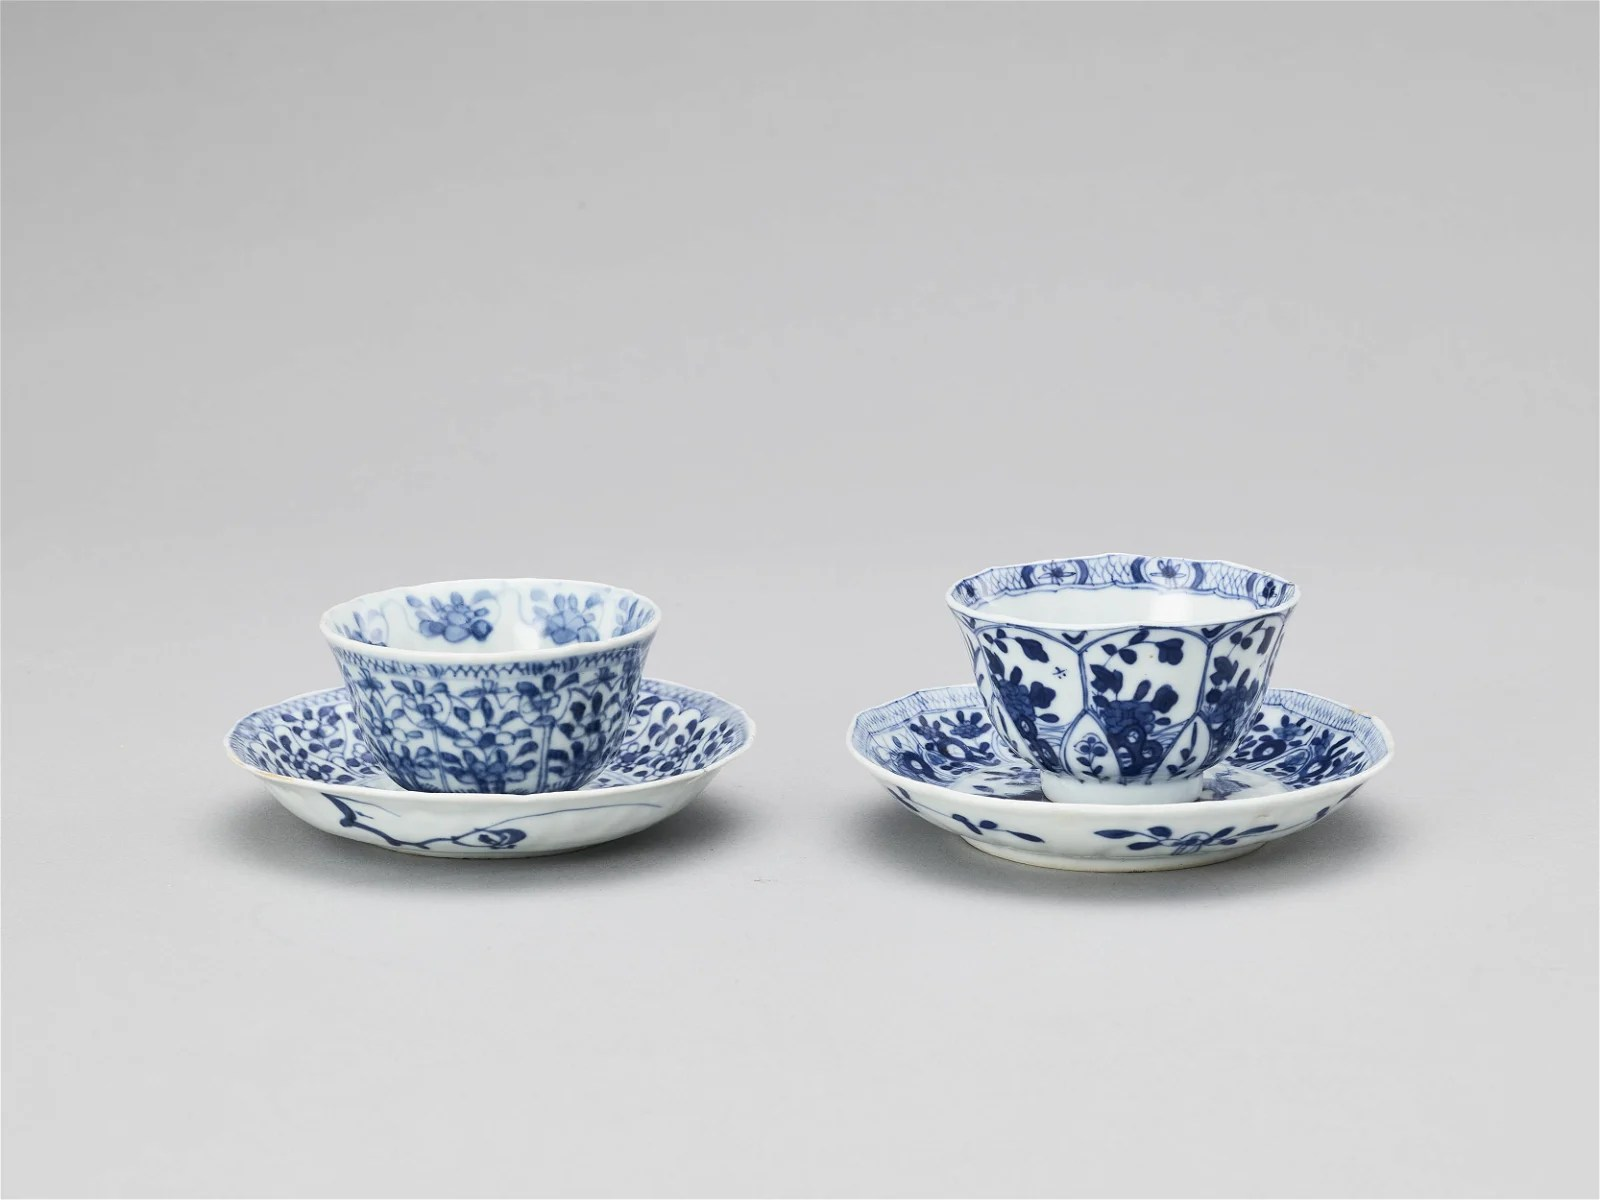 A PAIR PORCELAIN CUPS WITH MATCHING PLATES, KANGXI